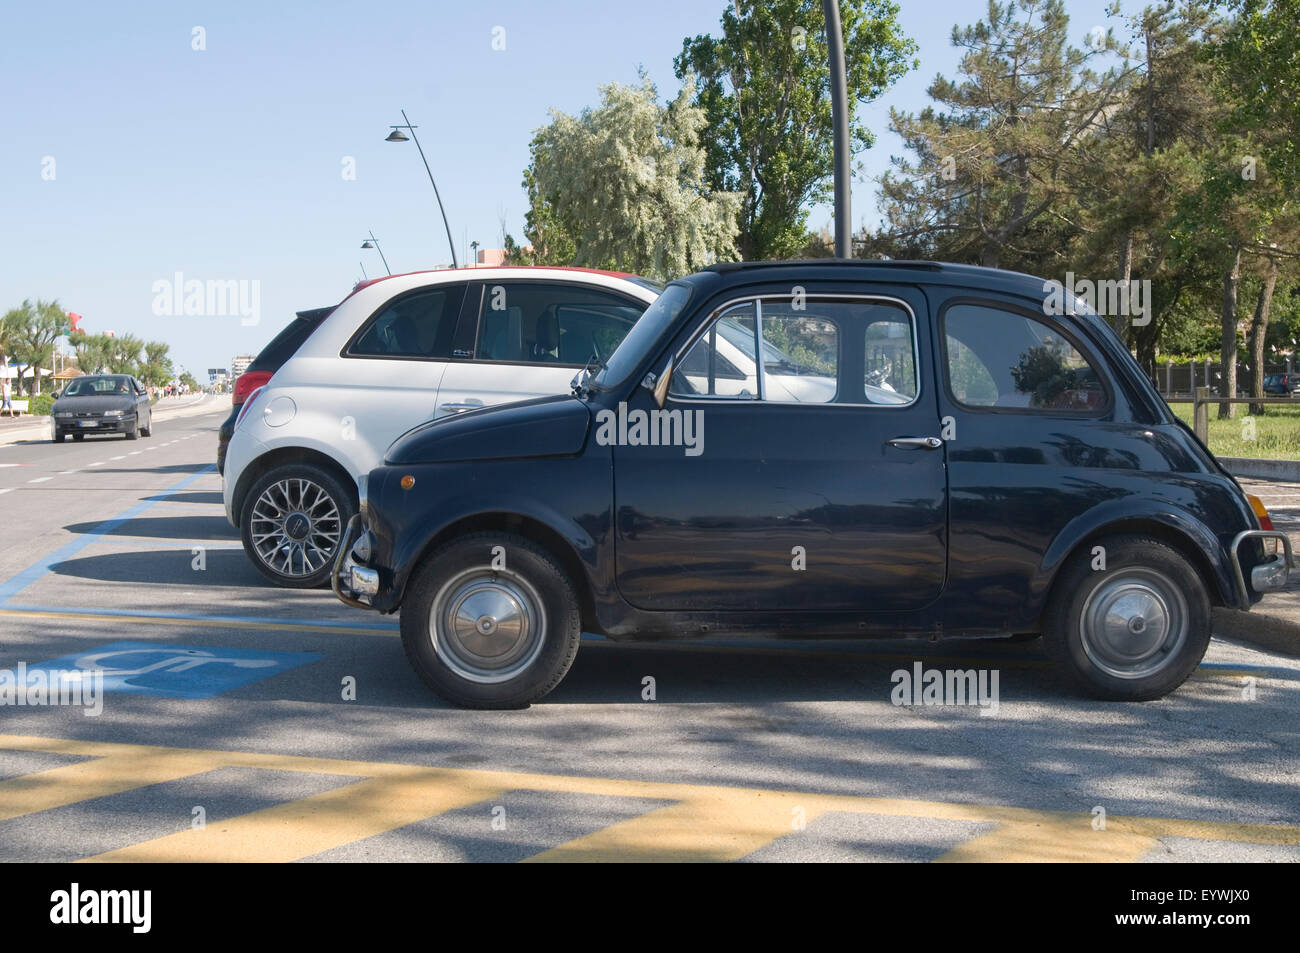 fiat 500 old and new photos fiat 500 old and new images alamy. Black Bedroom Furniture Sets. Home Design Ideas